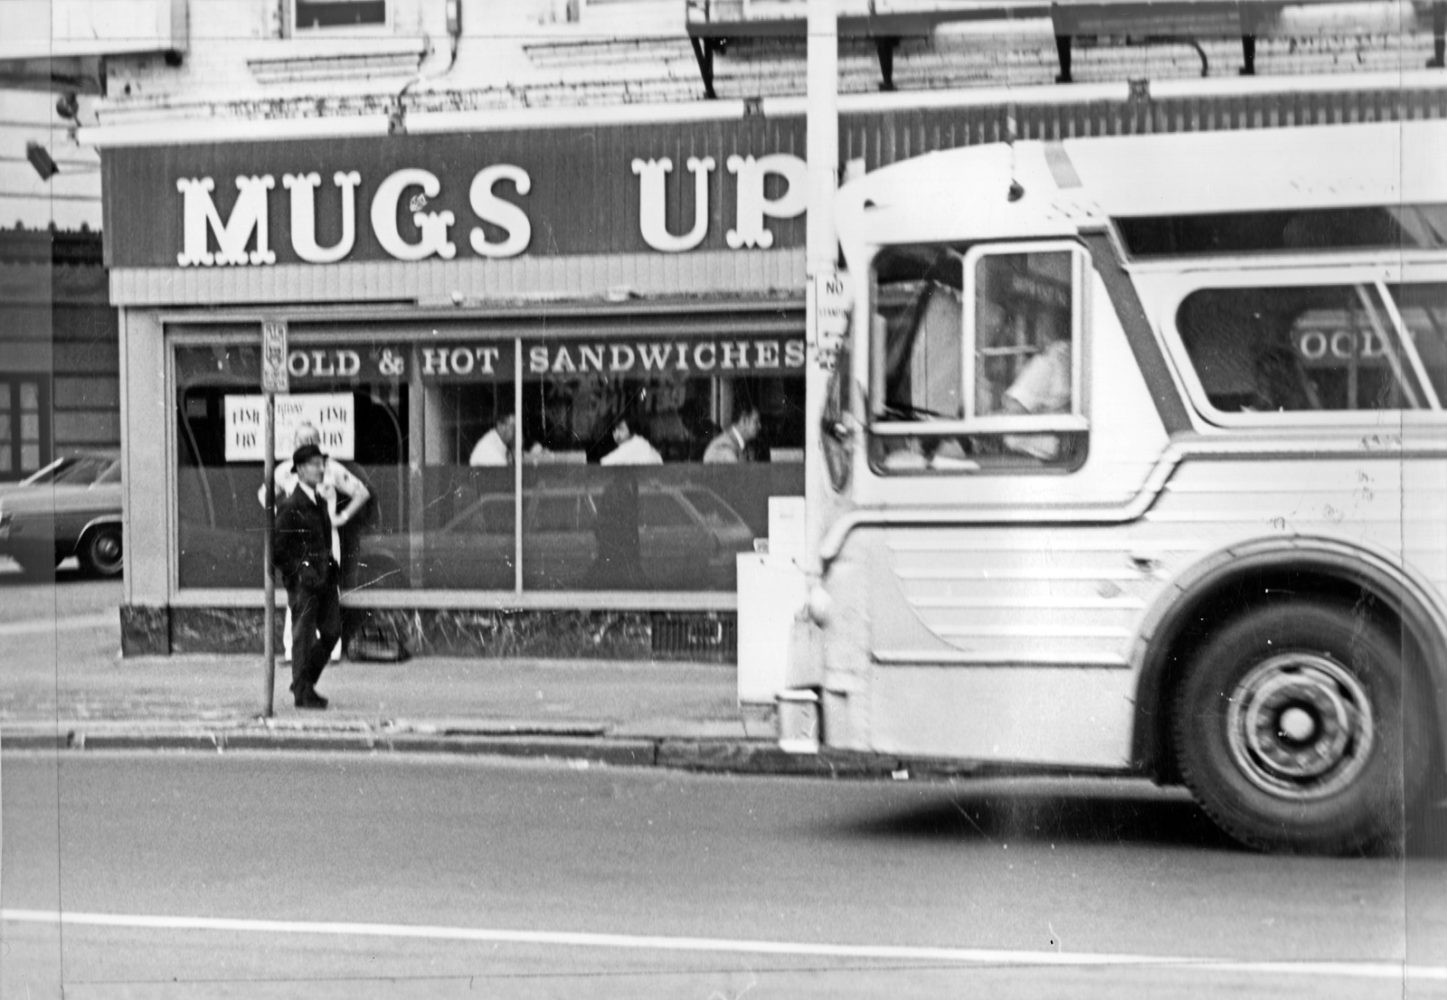 Muggs Up located where Sibley Library is today, across street from Eastman Theater - Paul Dodd photo 1976